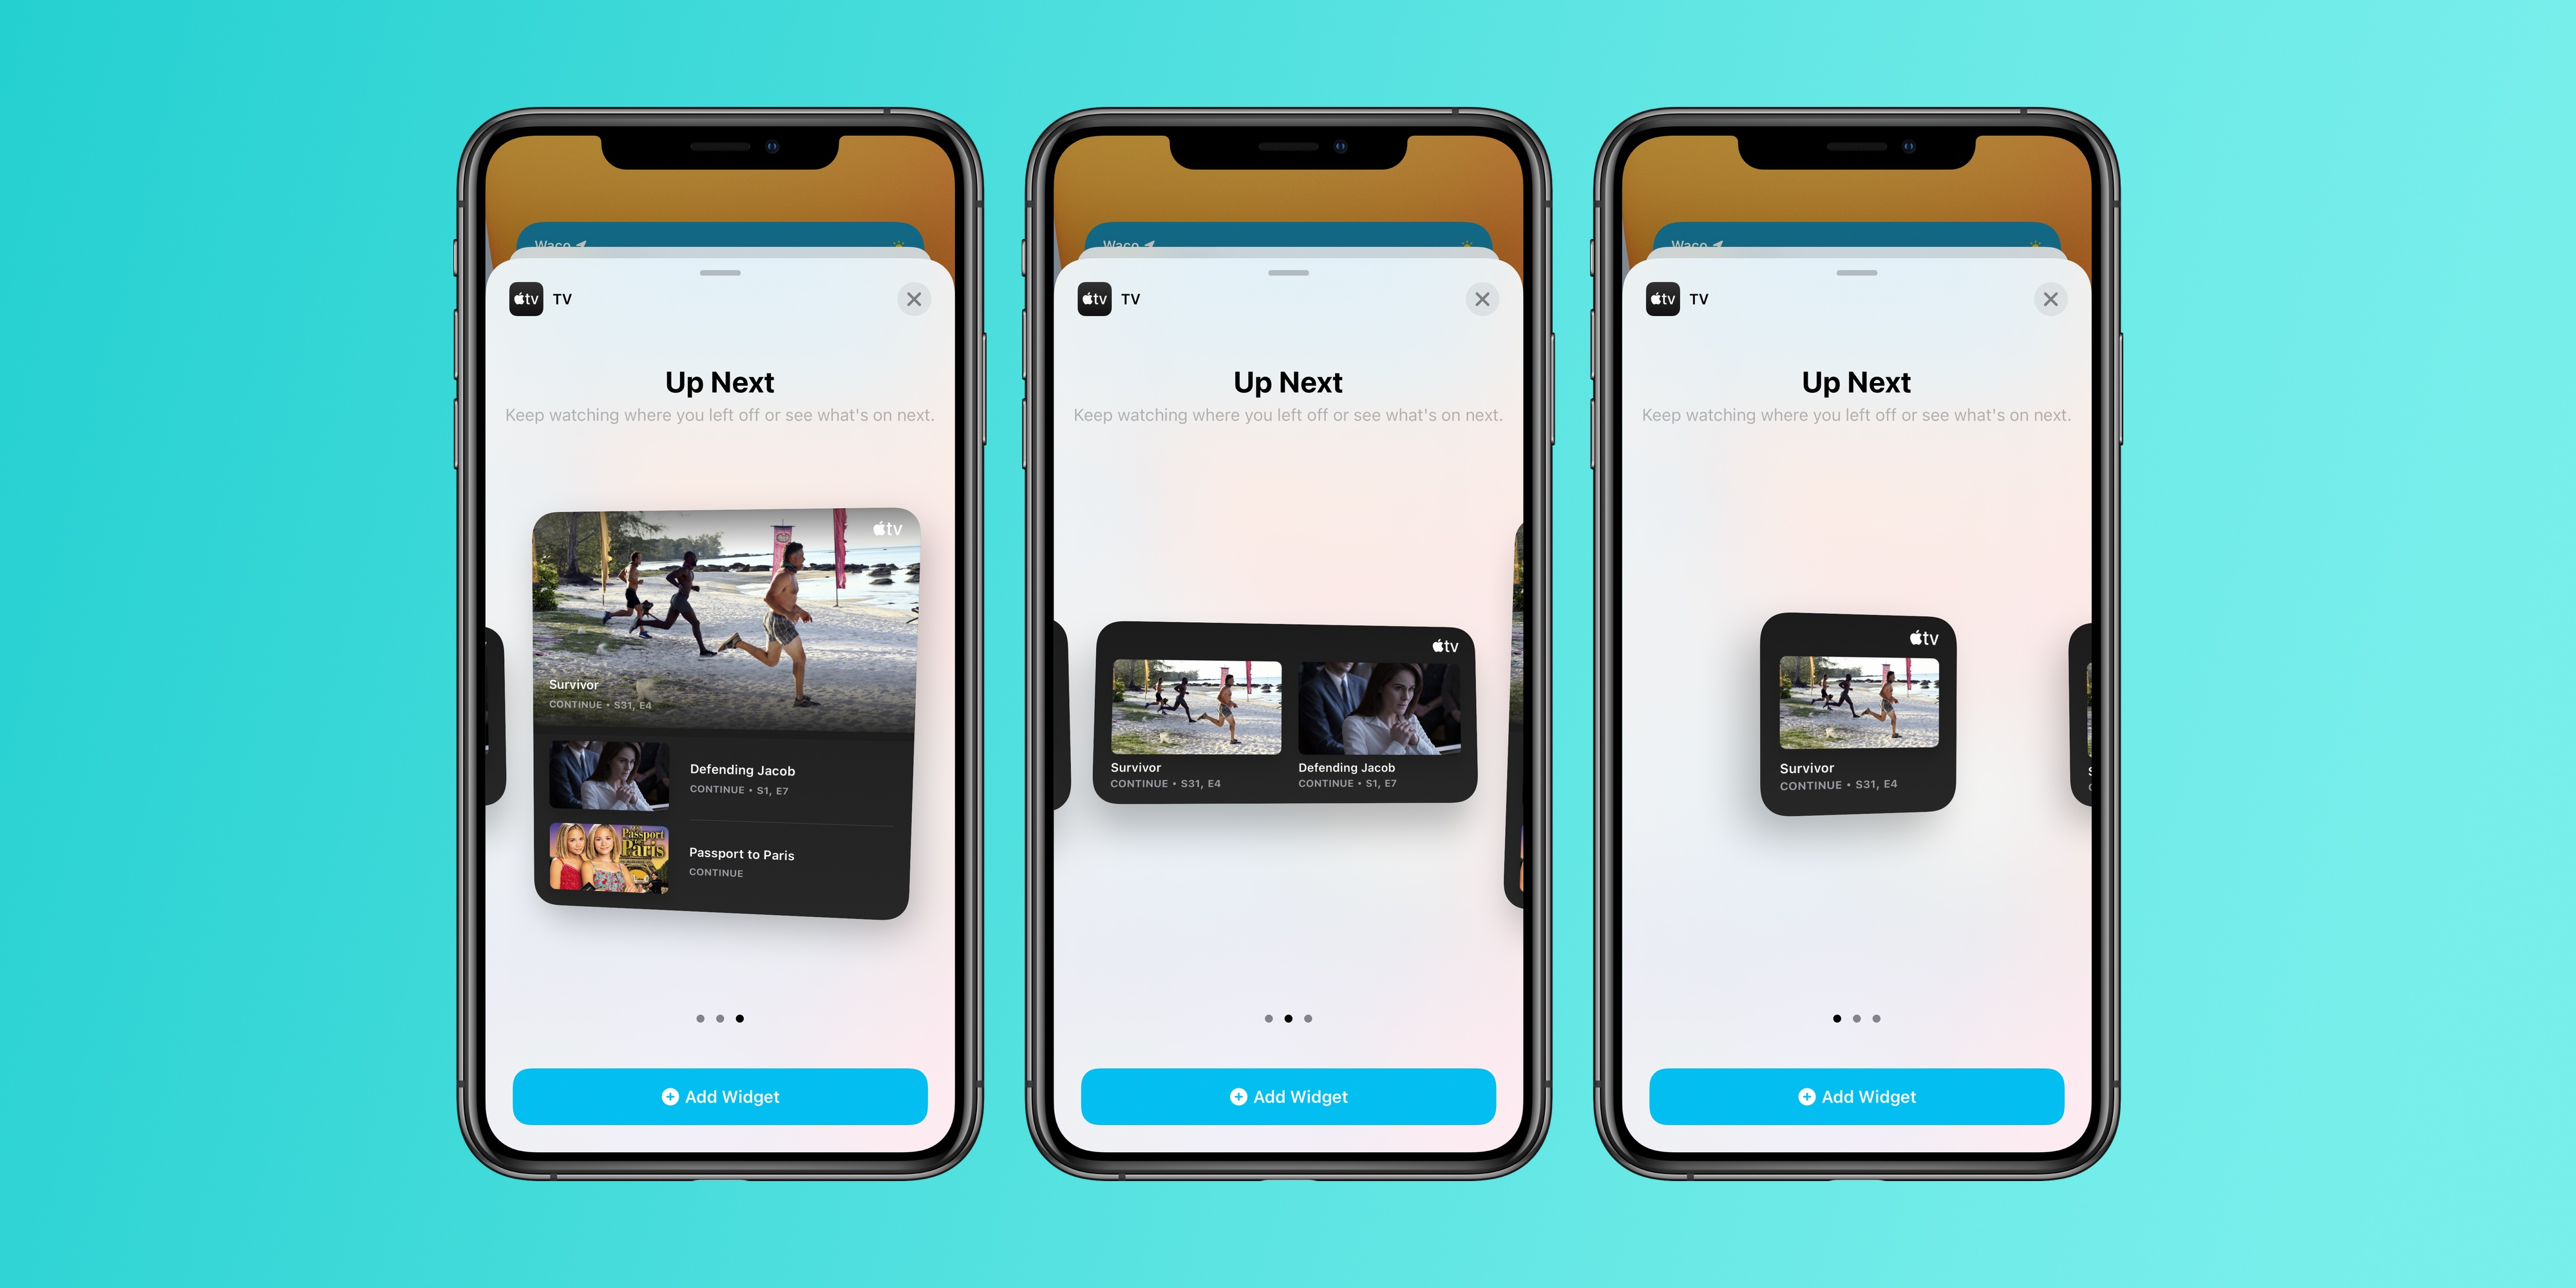 What's new in iOS 14 beta 4? New TV app widgets, Exposure Notification API support, more